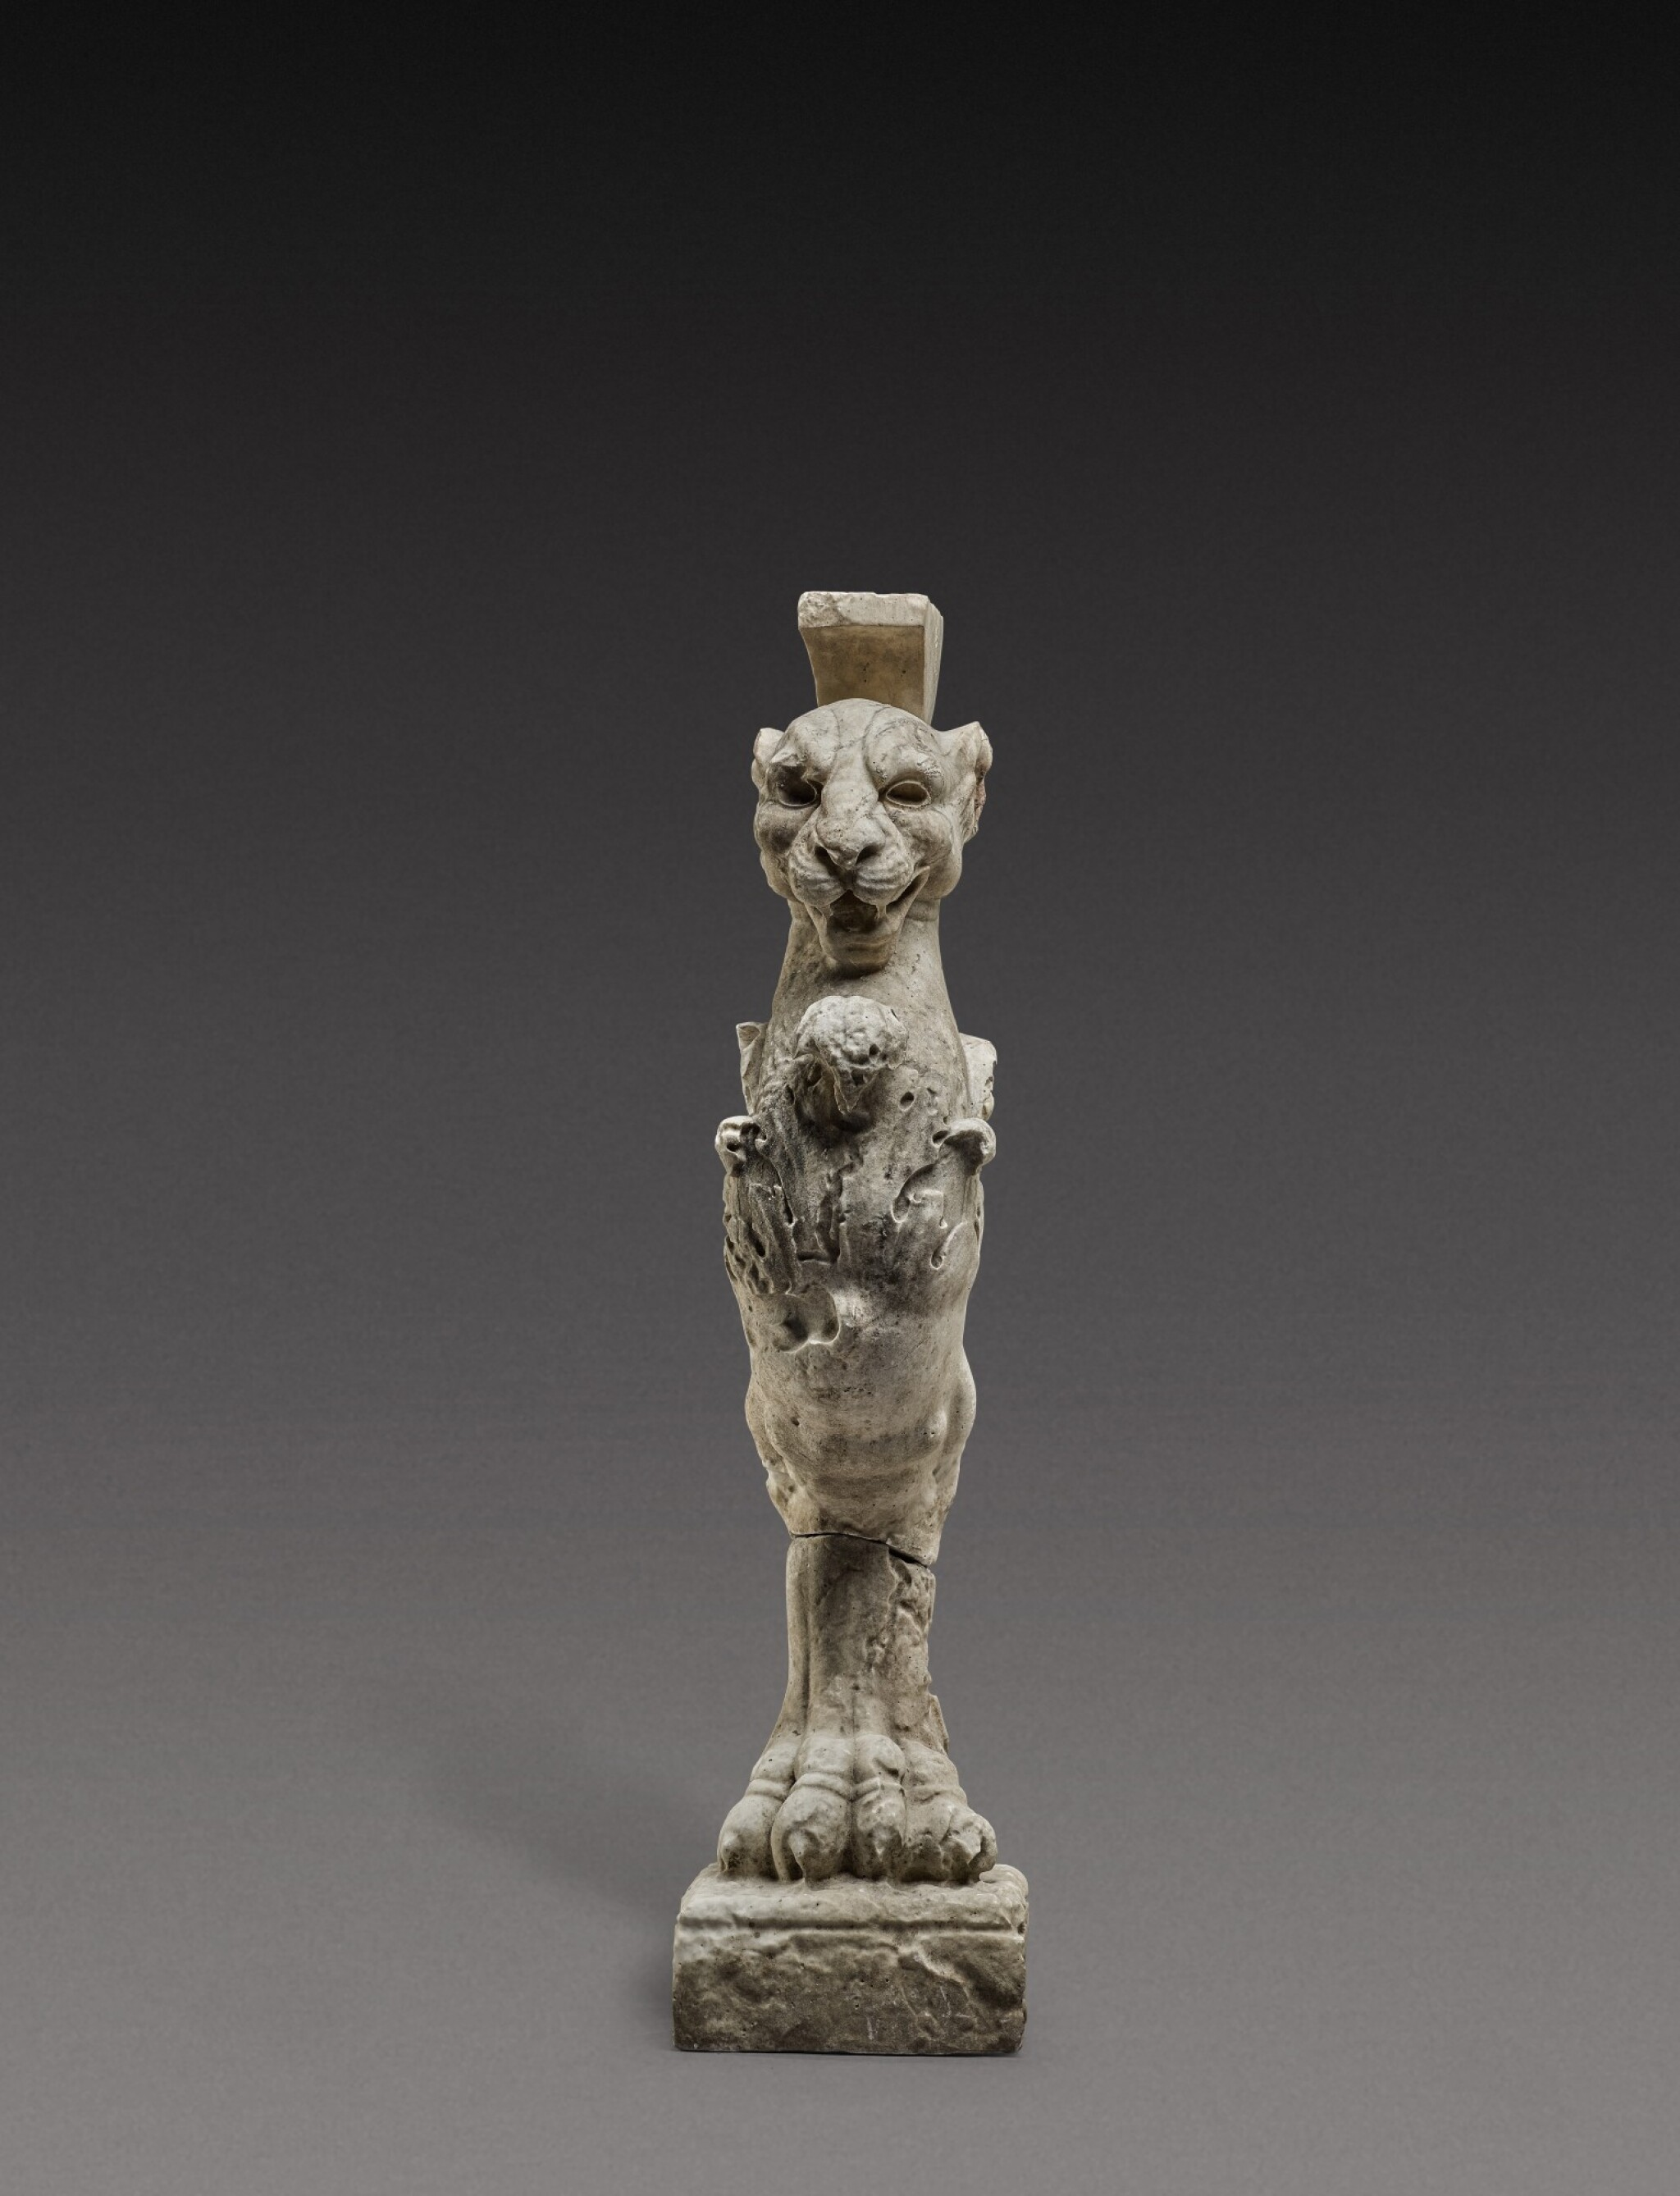 View 1 of Lot 140. Italian, 19th century, After the Antique   Table Leg in the form of a Lion.